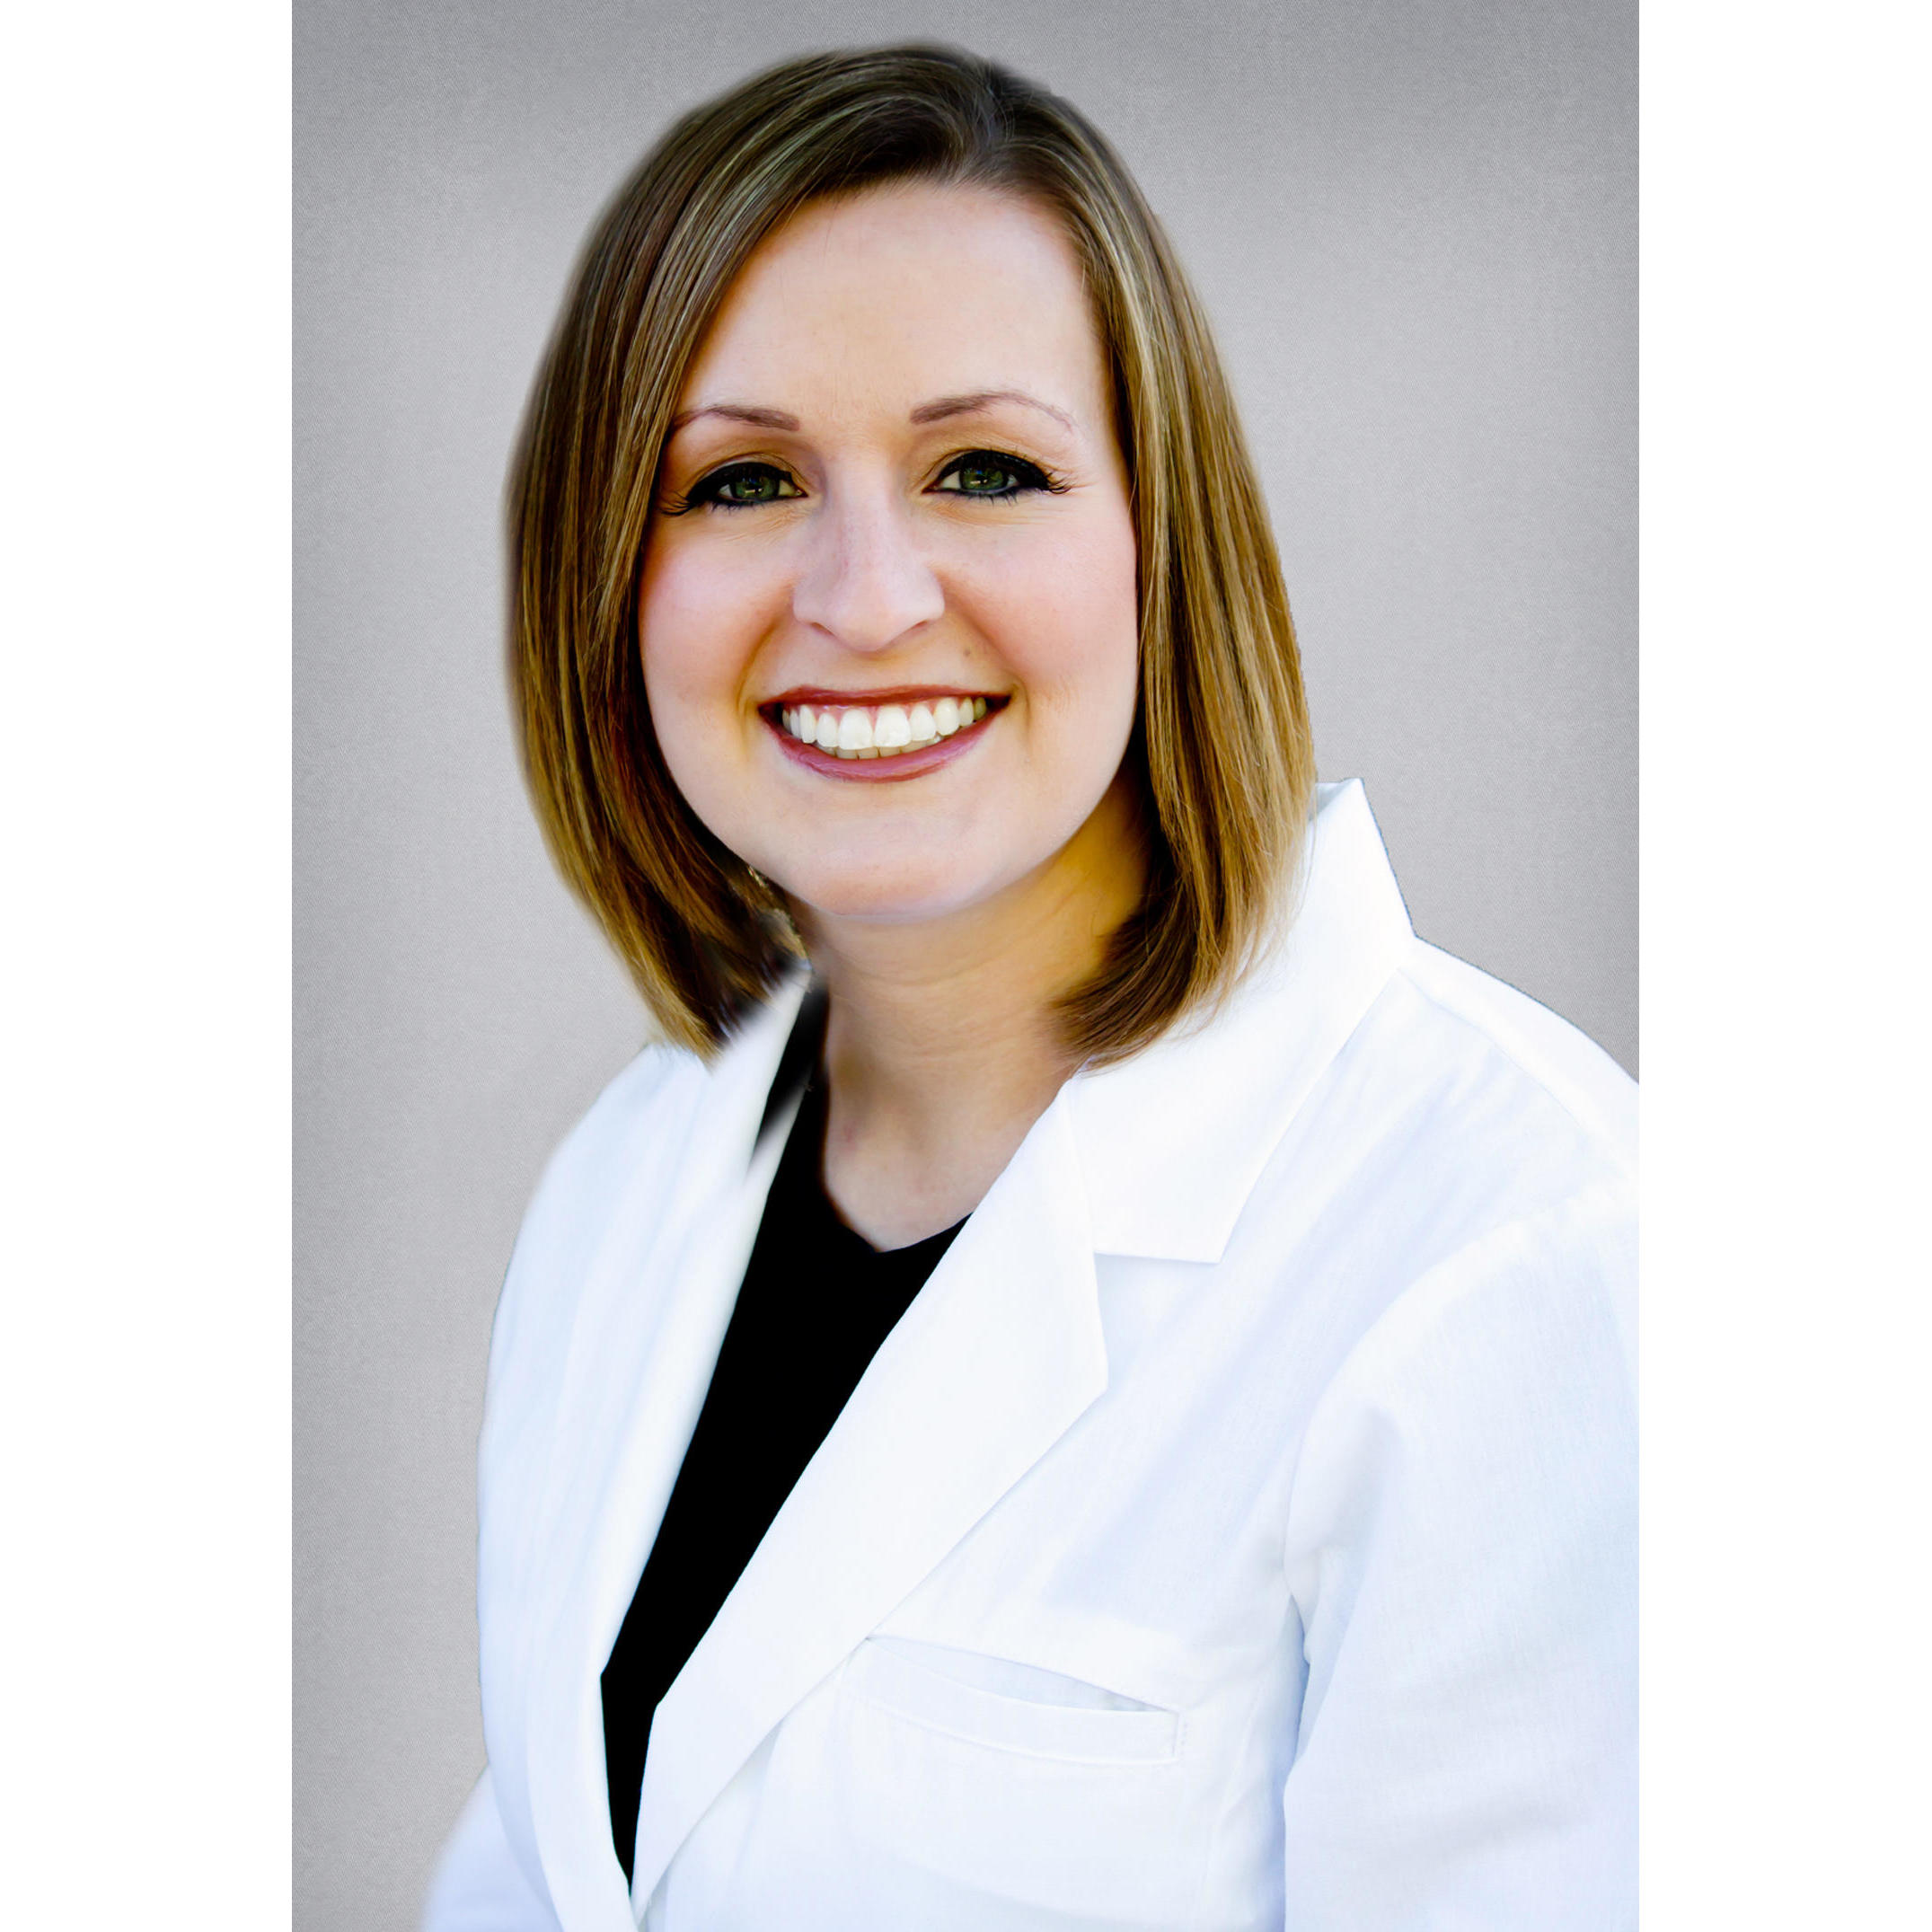 Holly Blehm, FNP image 1